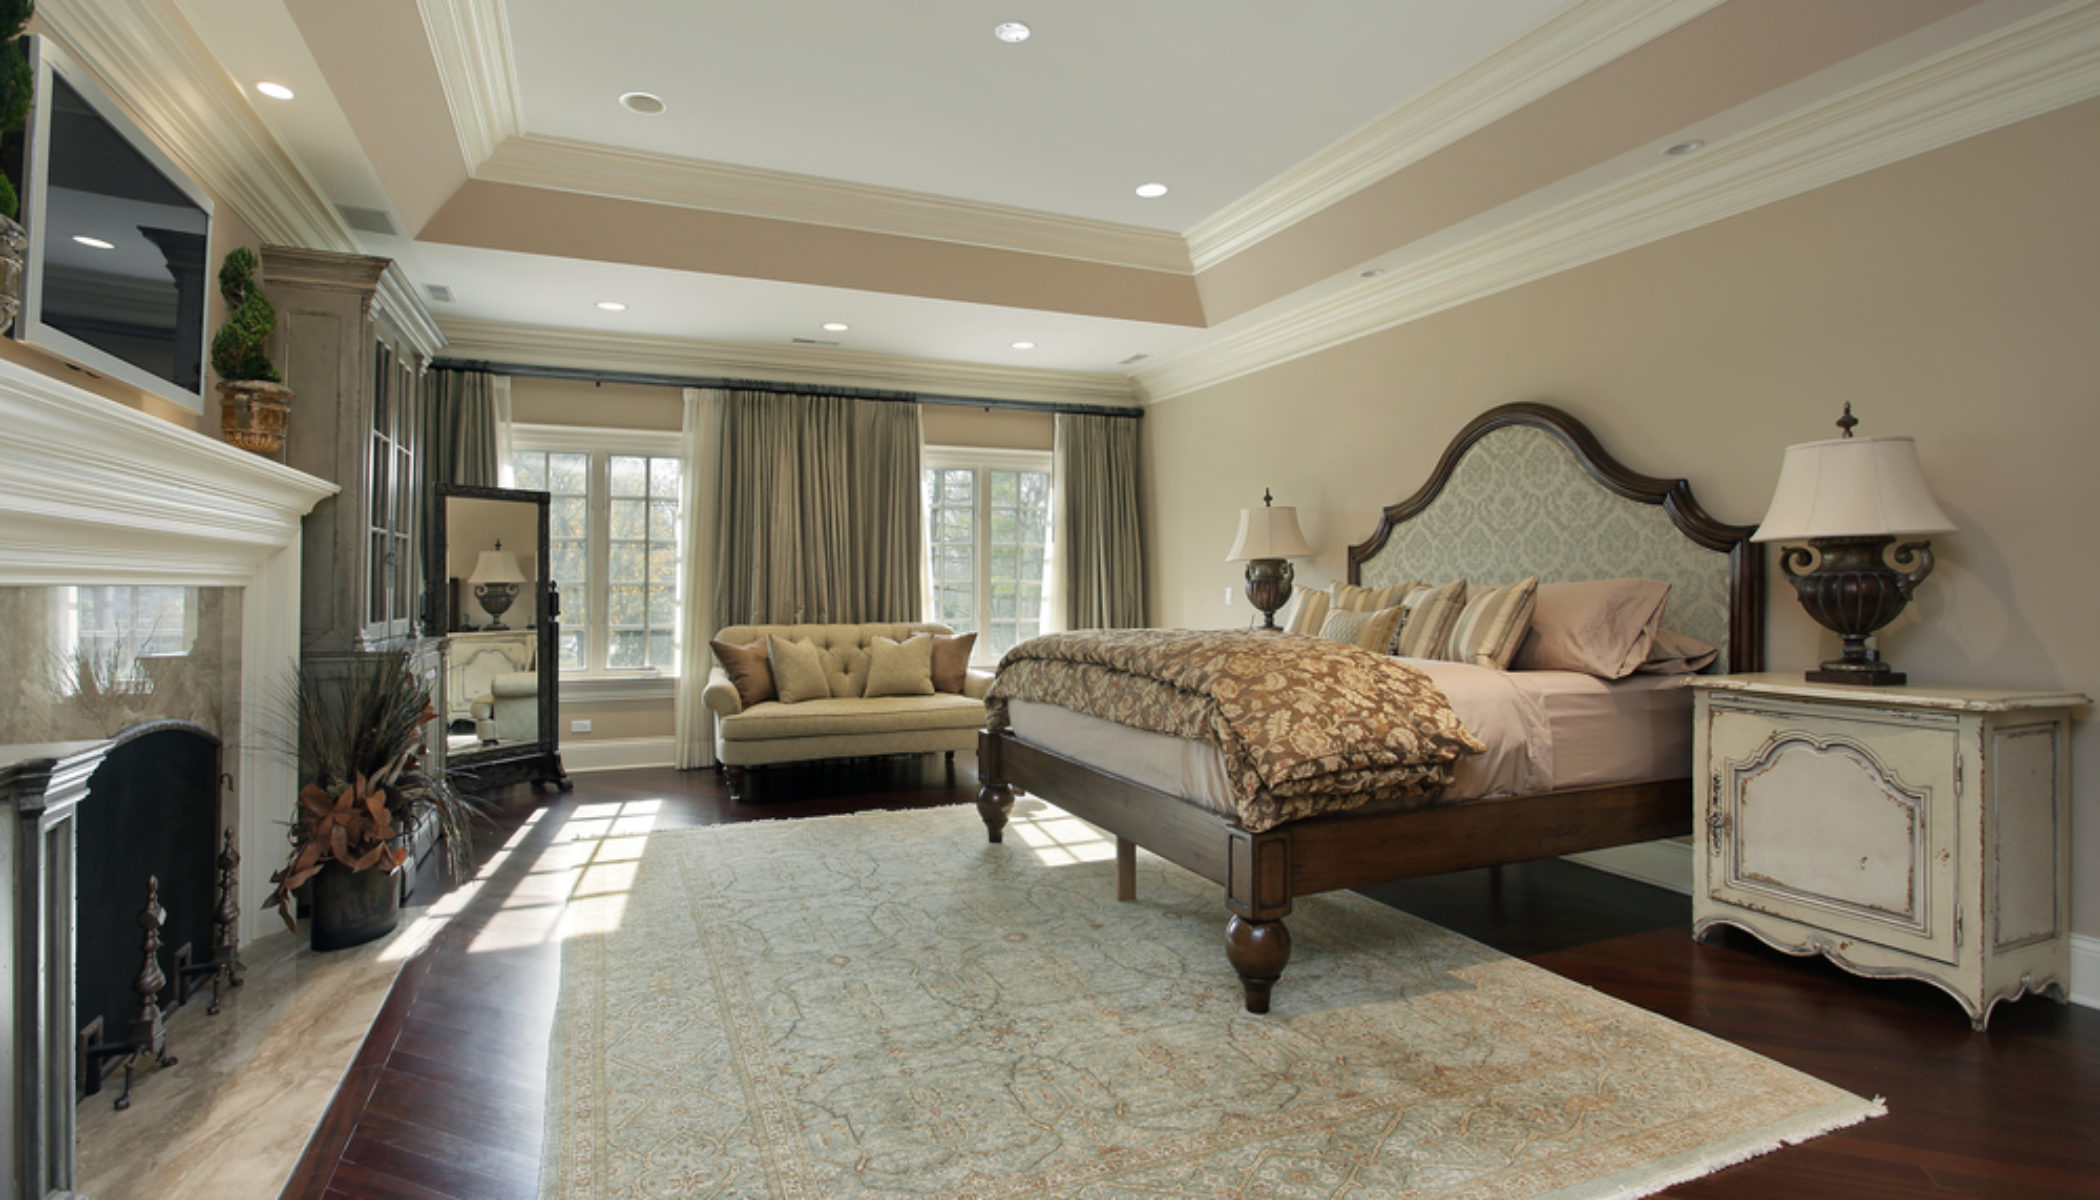 Top 4 Benefits Of Choosing Area Rugs For The Master Bedroom